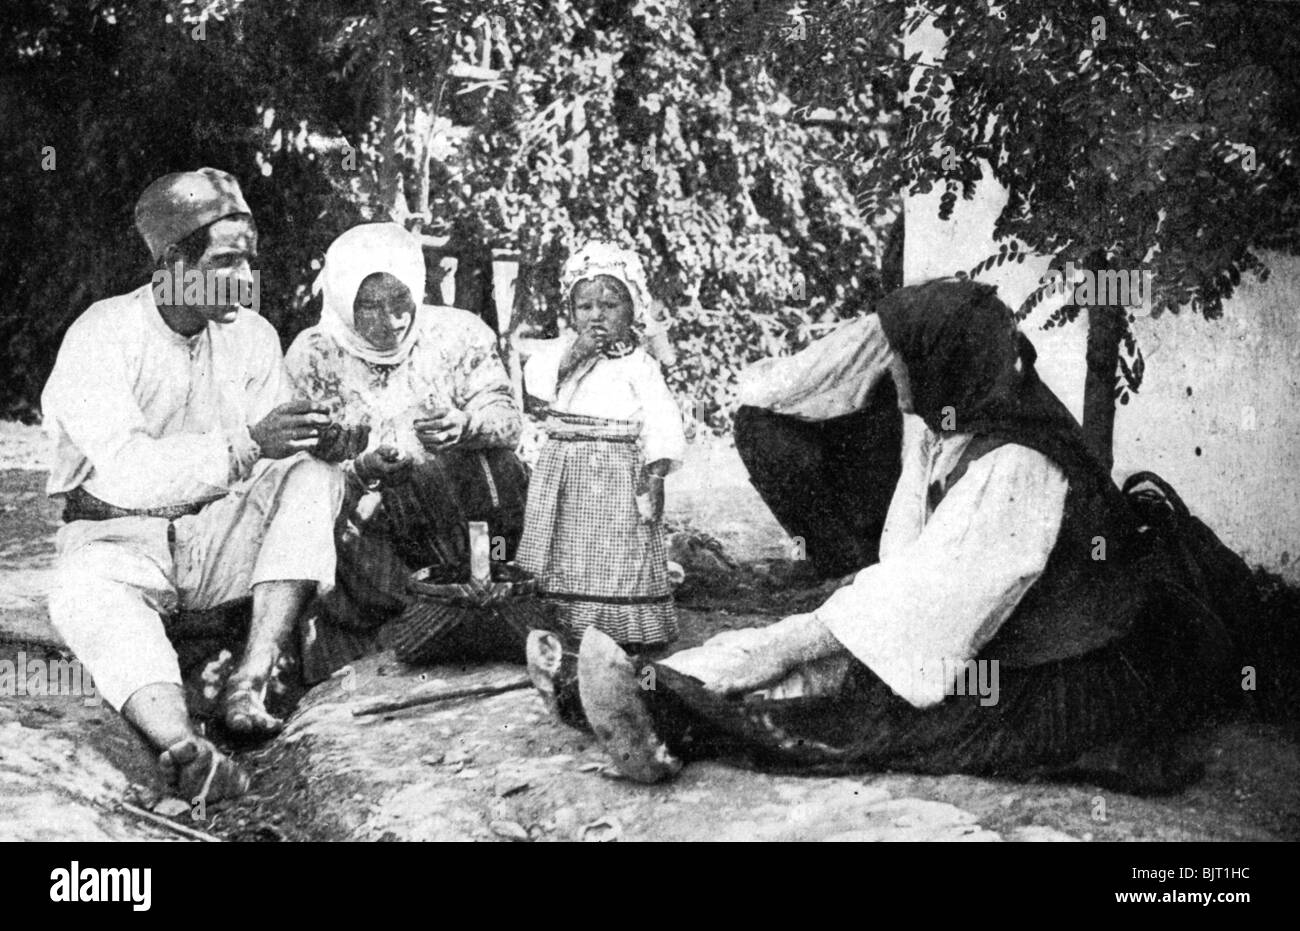 Serbian family telling the story of routing the Austrians from Bosnia, First World War, 1914. - Stock Image